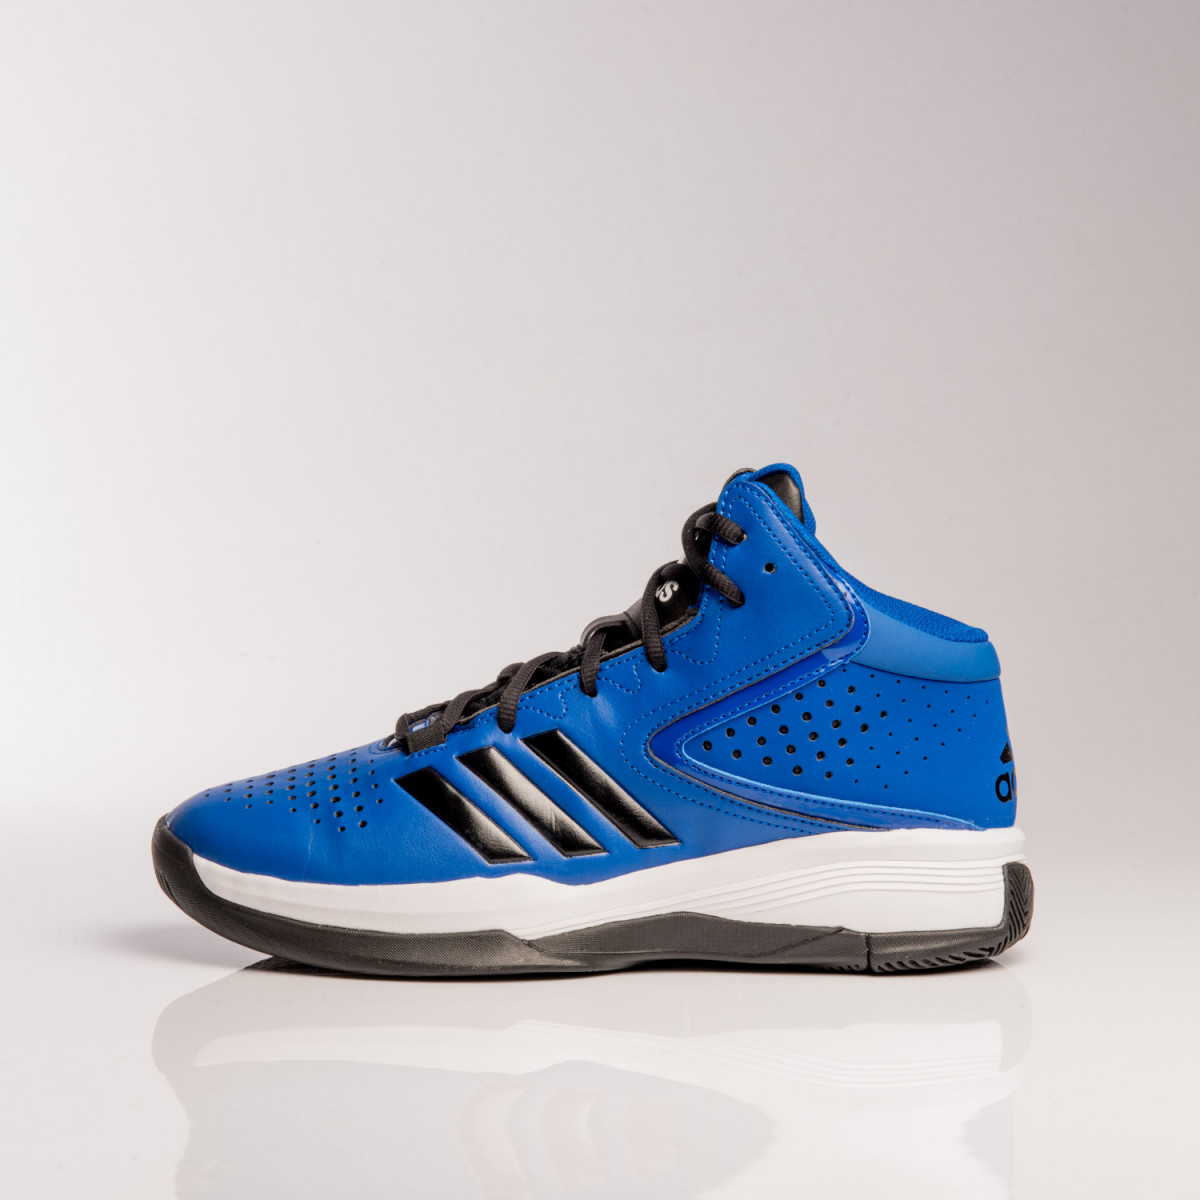 ZAPATILLAS ADIDAS CROSS EM 4